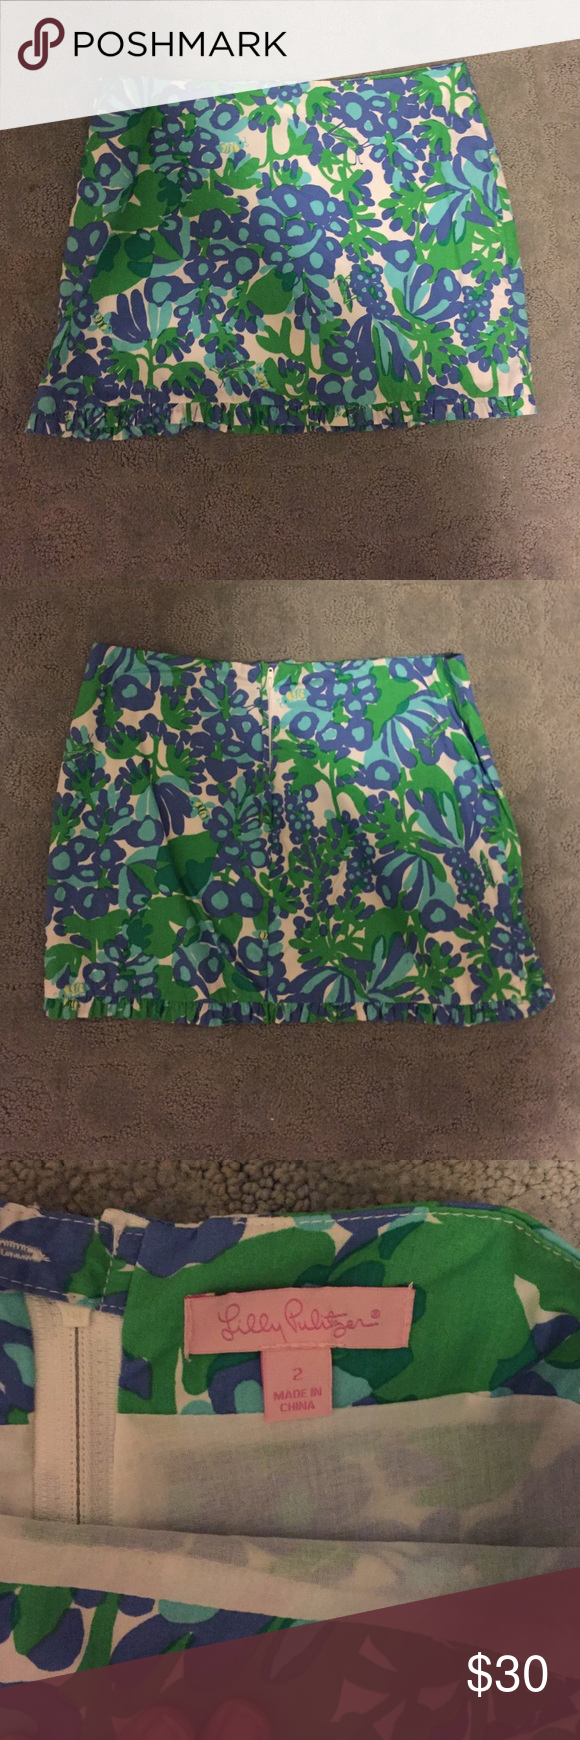 Lilly Pulitzer Size 2 Mini Skirt Lilly Pulitzer mini skirt, ruffle detail at the hem. Hits about mid thigh and low waisted. Worn twice. Lilly Pulitzer Skirts Mini